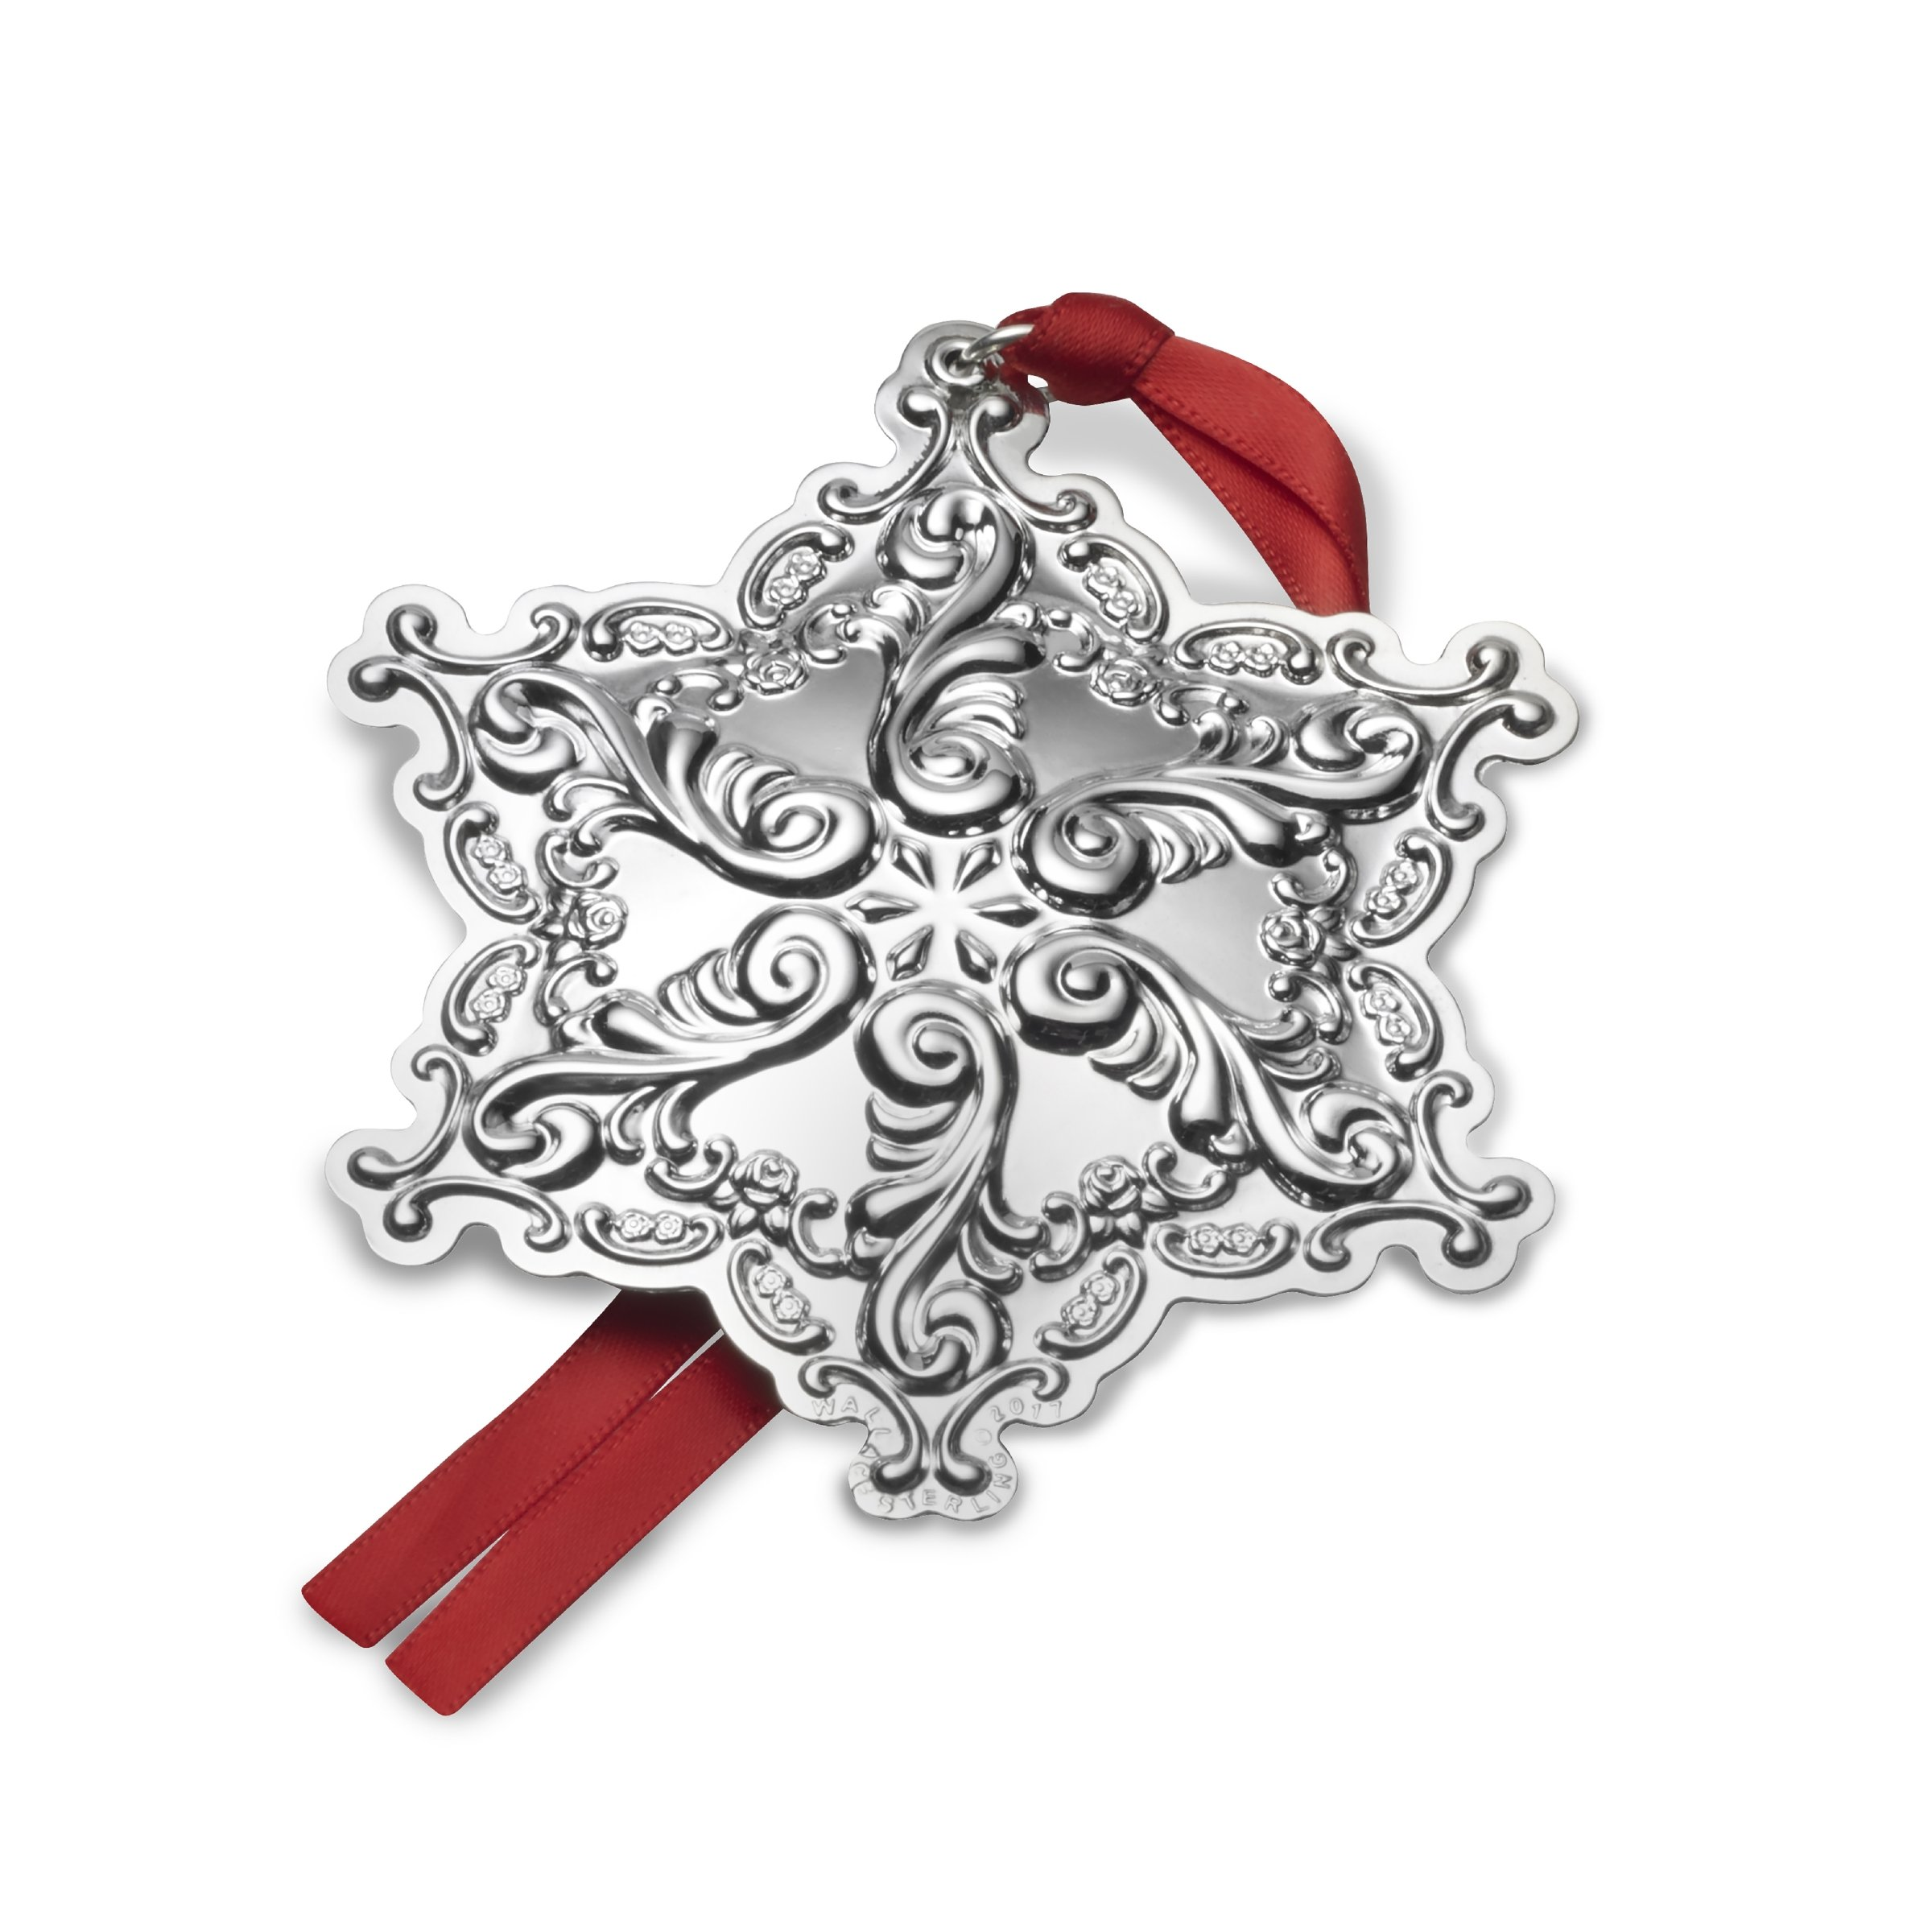 Wallace 2017 Sterling Silver Grand Baroque Snowflake Ornament, 20th Anniversary Edition by Wallace